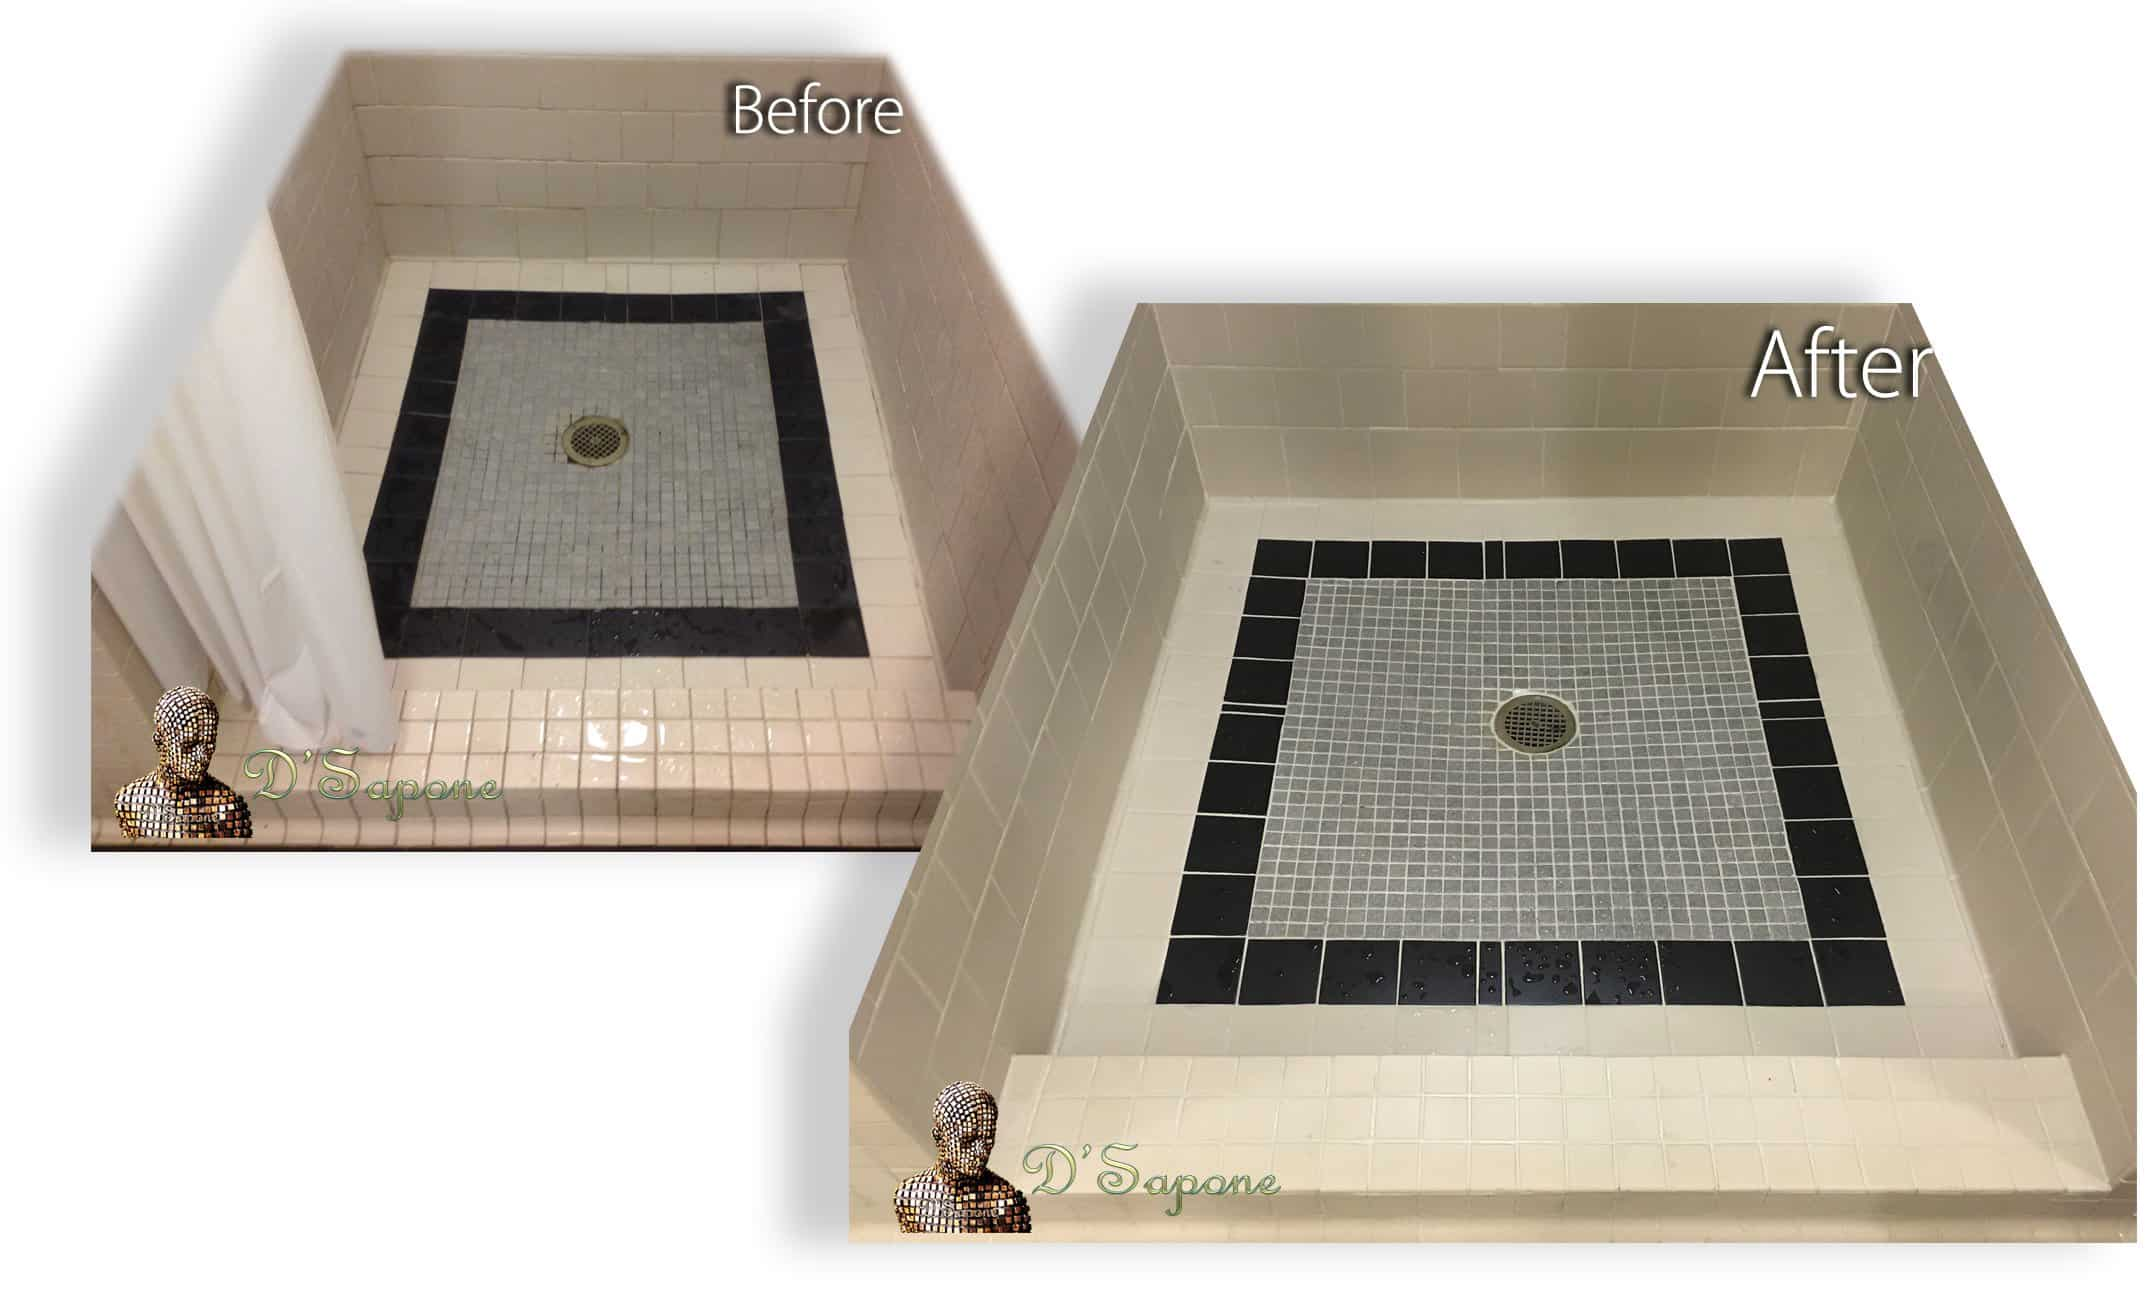 Commercial Tile Grout Commercial Tile Grout Cleaning - Commercial grout sealer